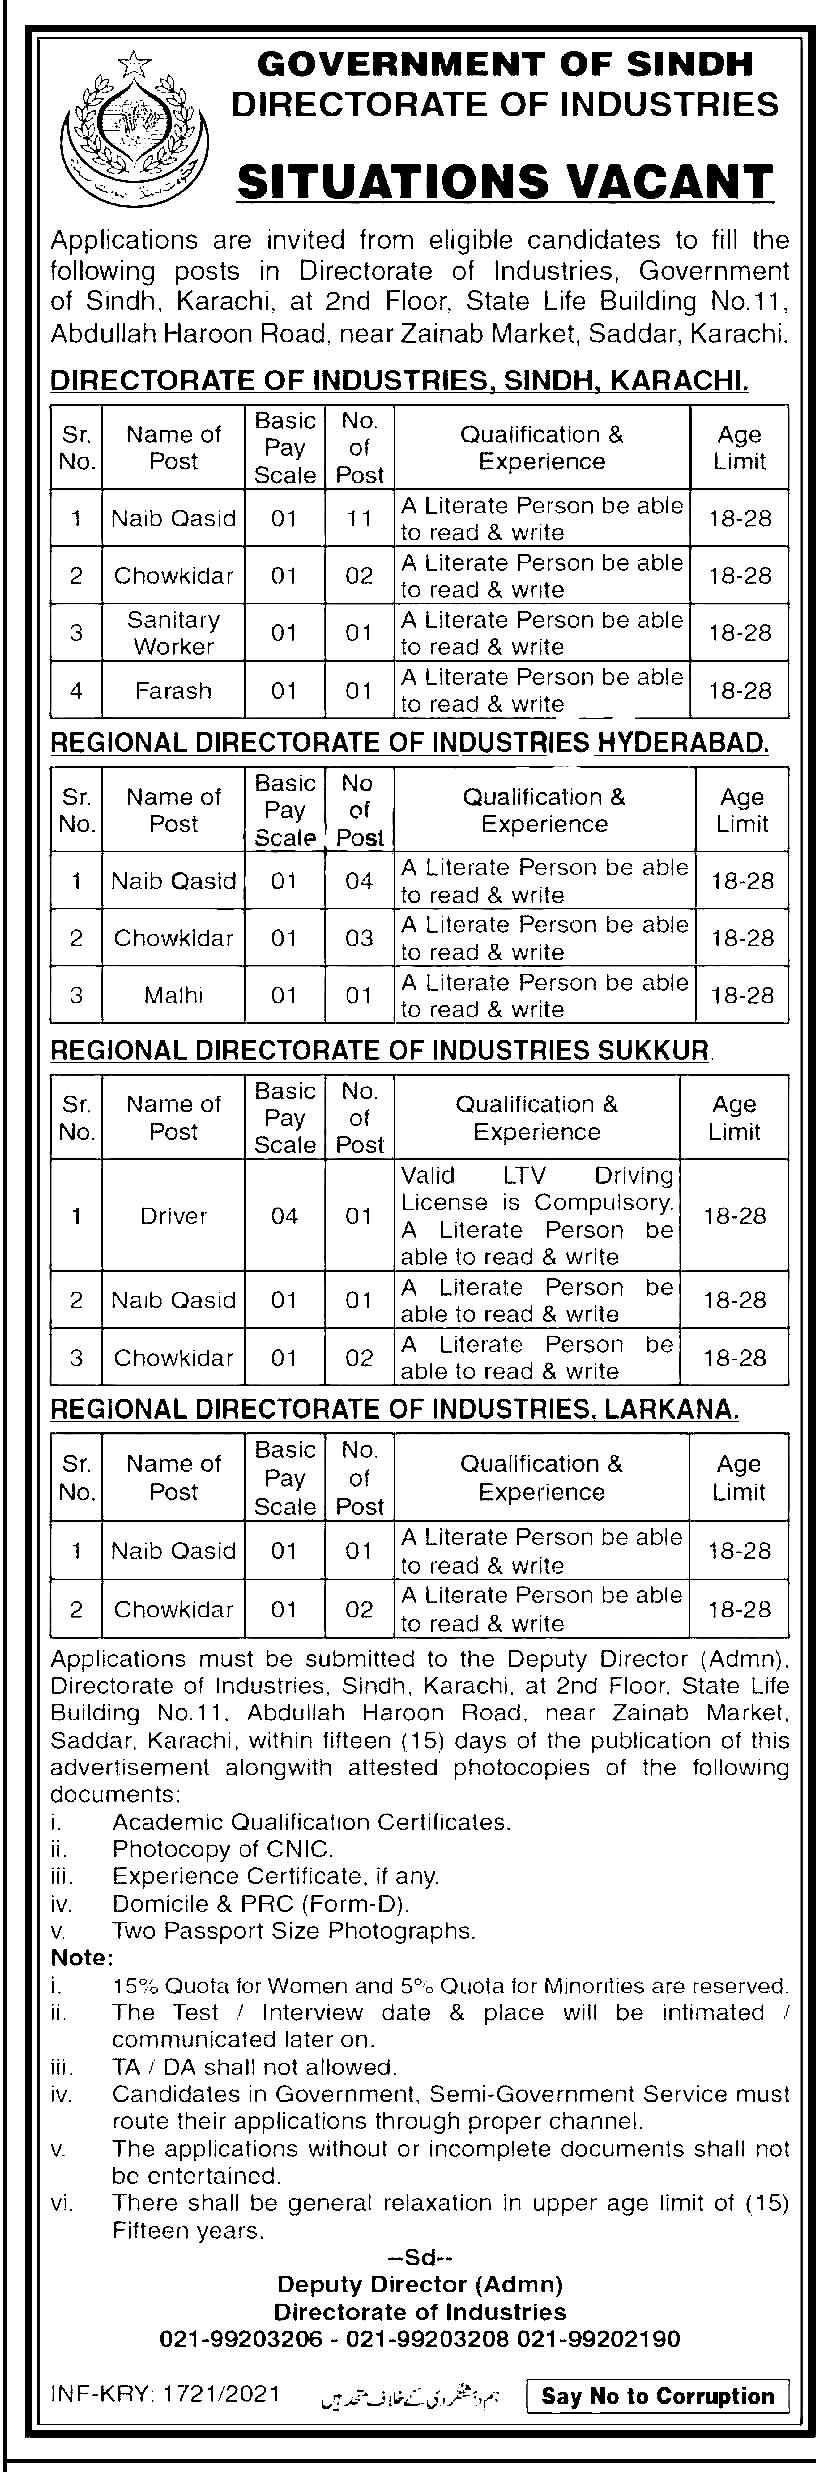 Government of Sindh Directorate of Industries Jobs 2021